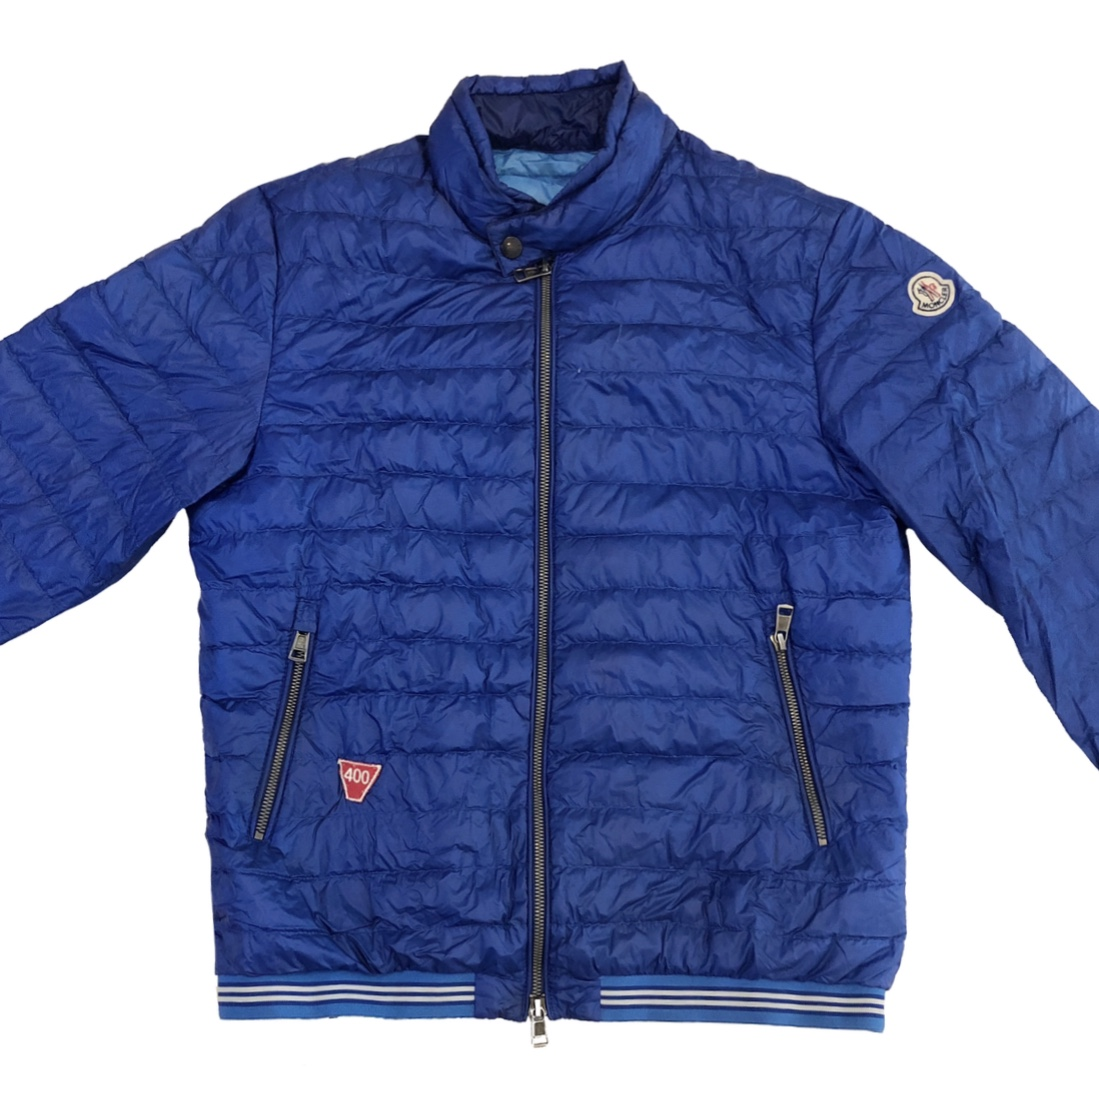 642350c2c Moncler Navy Blue Longue Saison Down Quilted Jacket